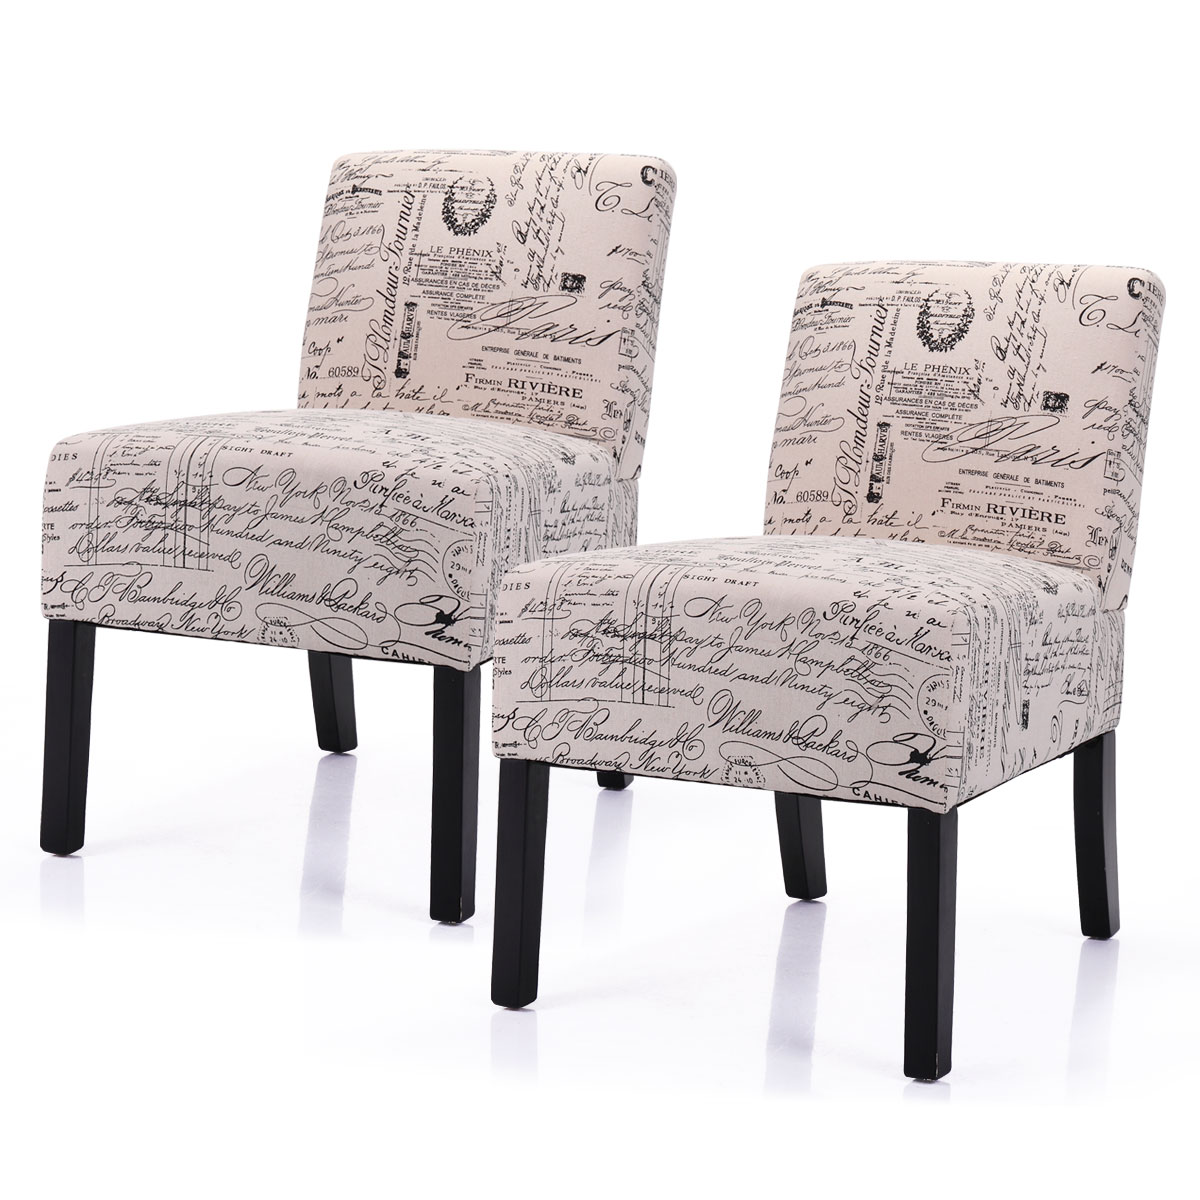 Jaxpety Pack of 2 Large Size Single Leisure Sofa Accent Chair Armless with Solid Wood Legs Home Living Room, Beige